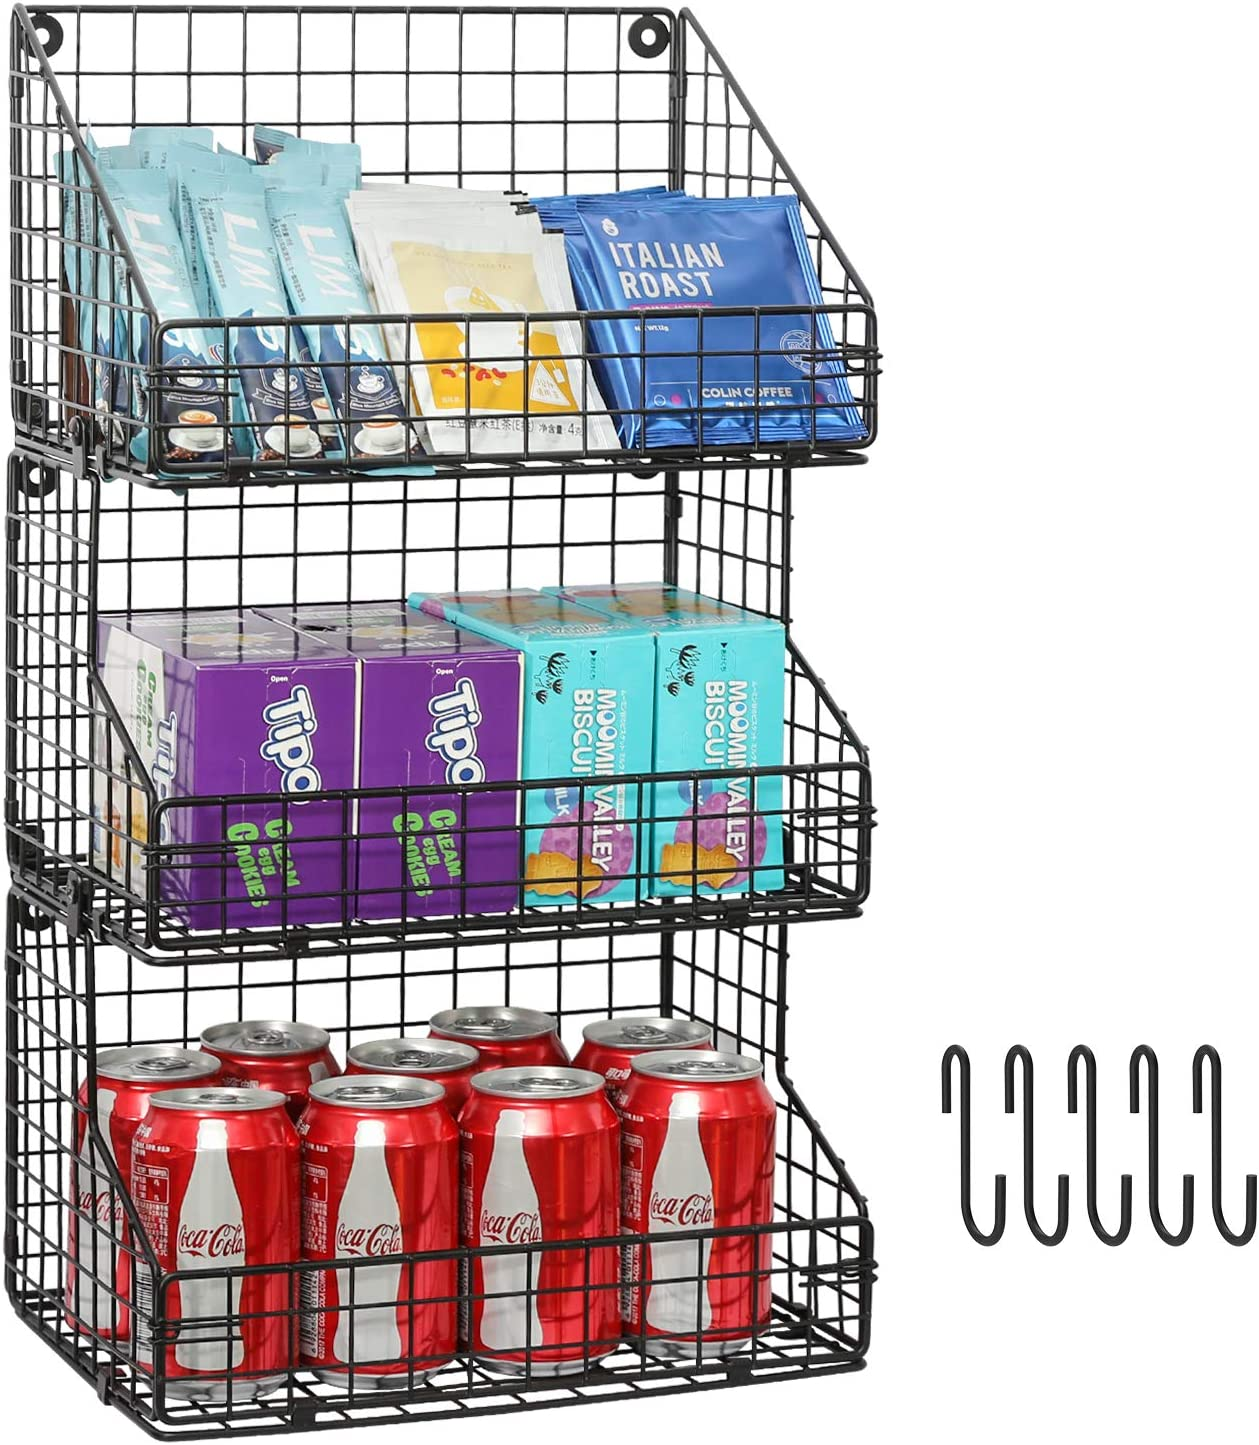 X-cosrack 3 Tier Stackable Tea Bag Organizer Large Size with 5 Hooks Metal Wire Basket Coffee Snack Rack Holder Countertop Caddy Bin Wall Mount Shelf for Office Kitchen Cabinet Pantry Patent Pending